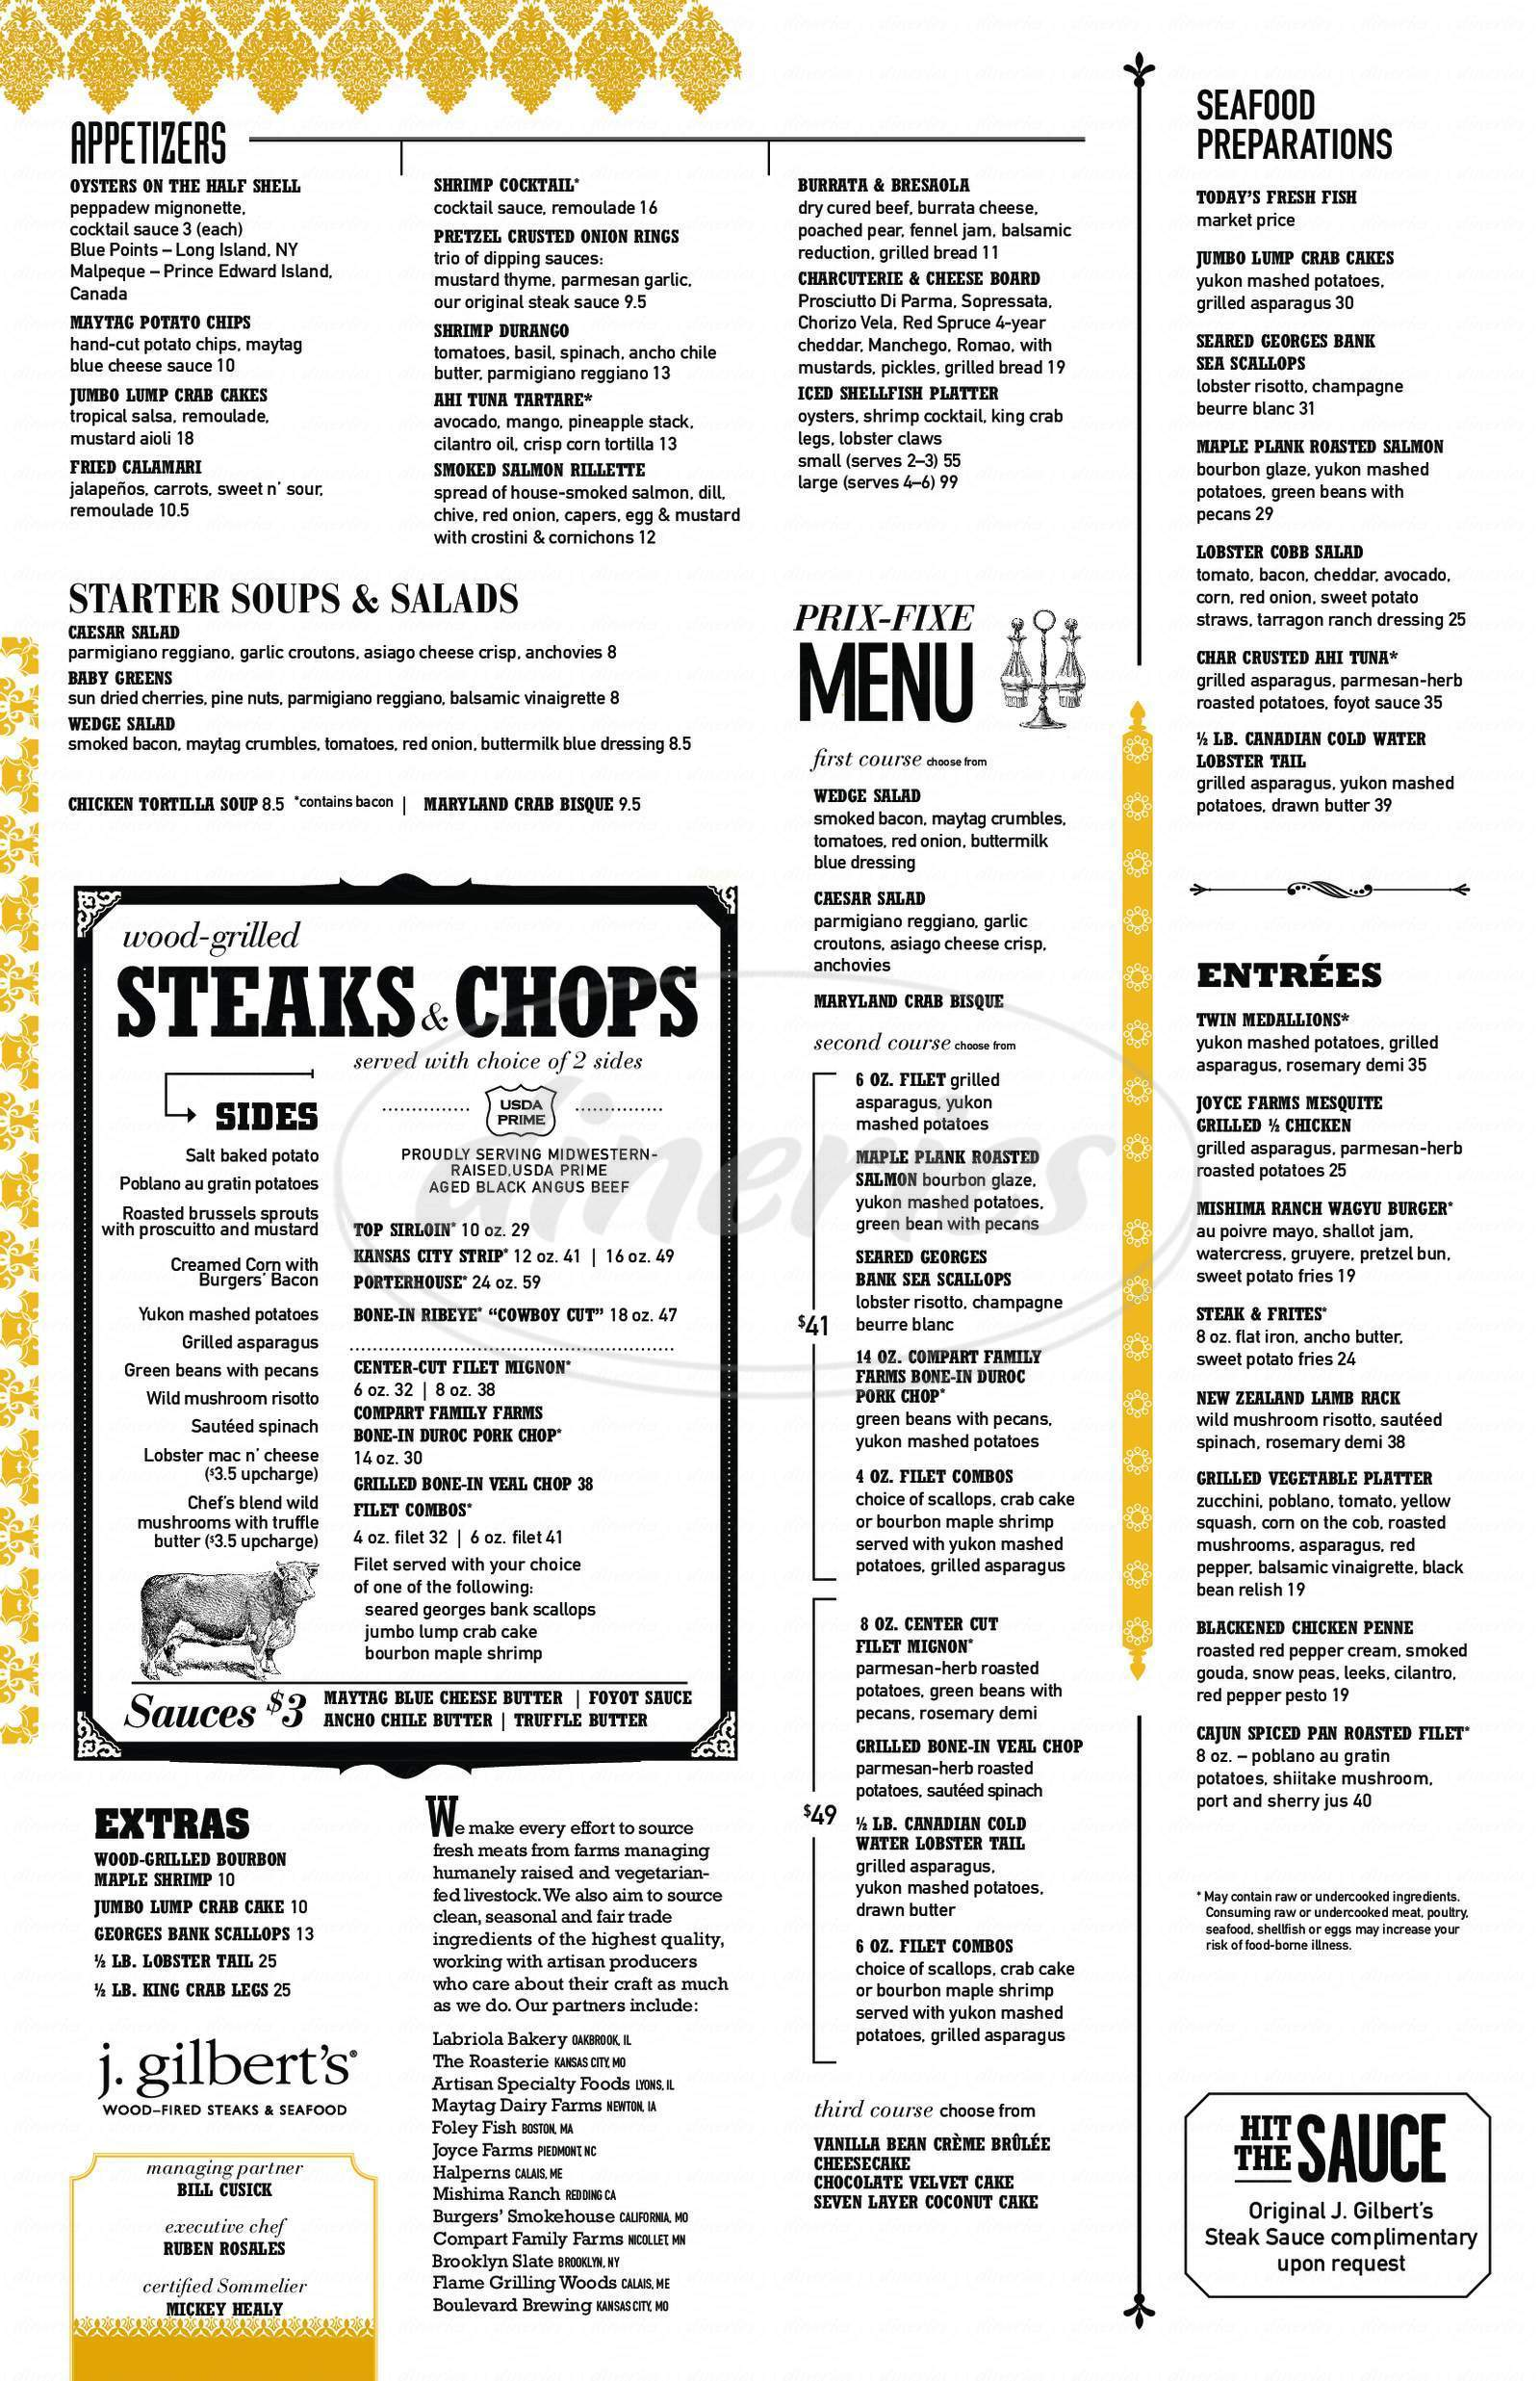 menu for J Gilbert's Wood Fired Steaks and Seafood